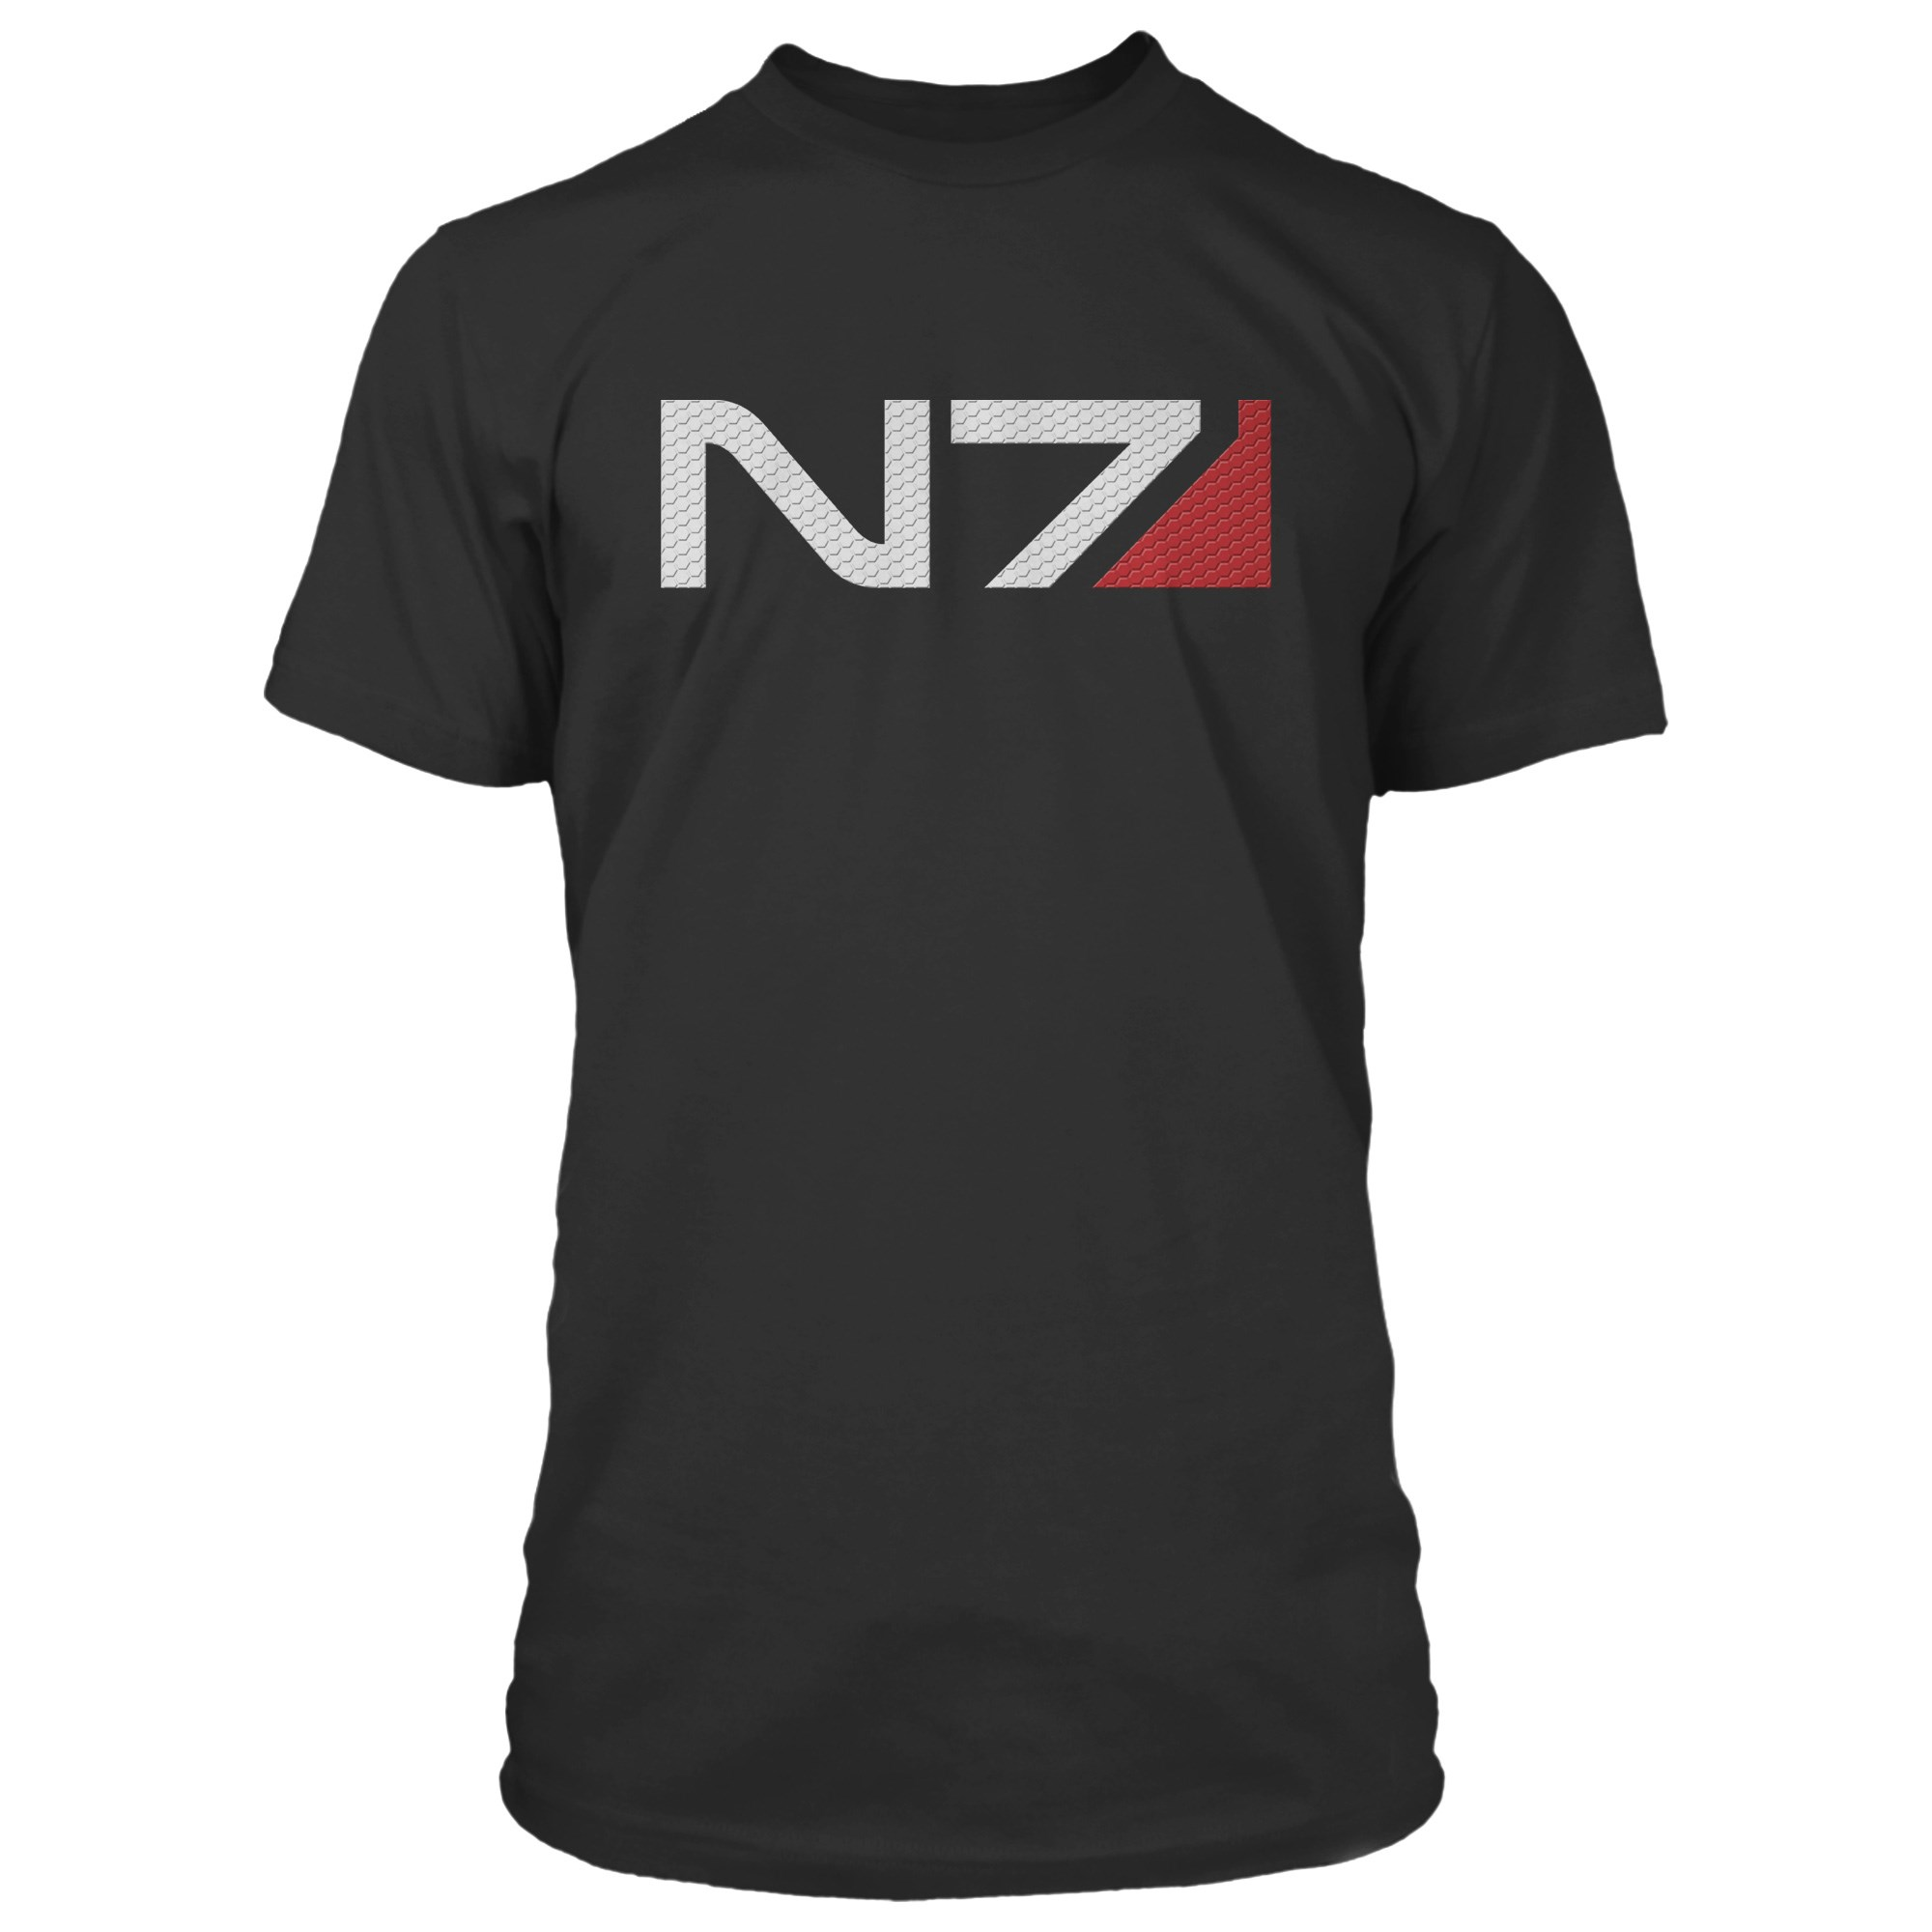 Details about Mass Effect N7 Logo Premium Adult T.